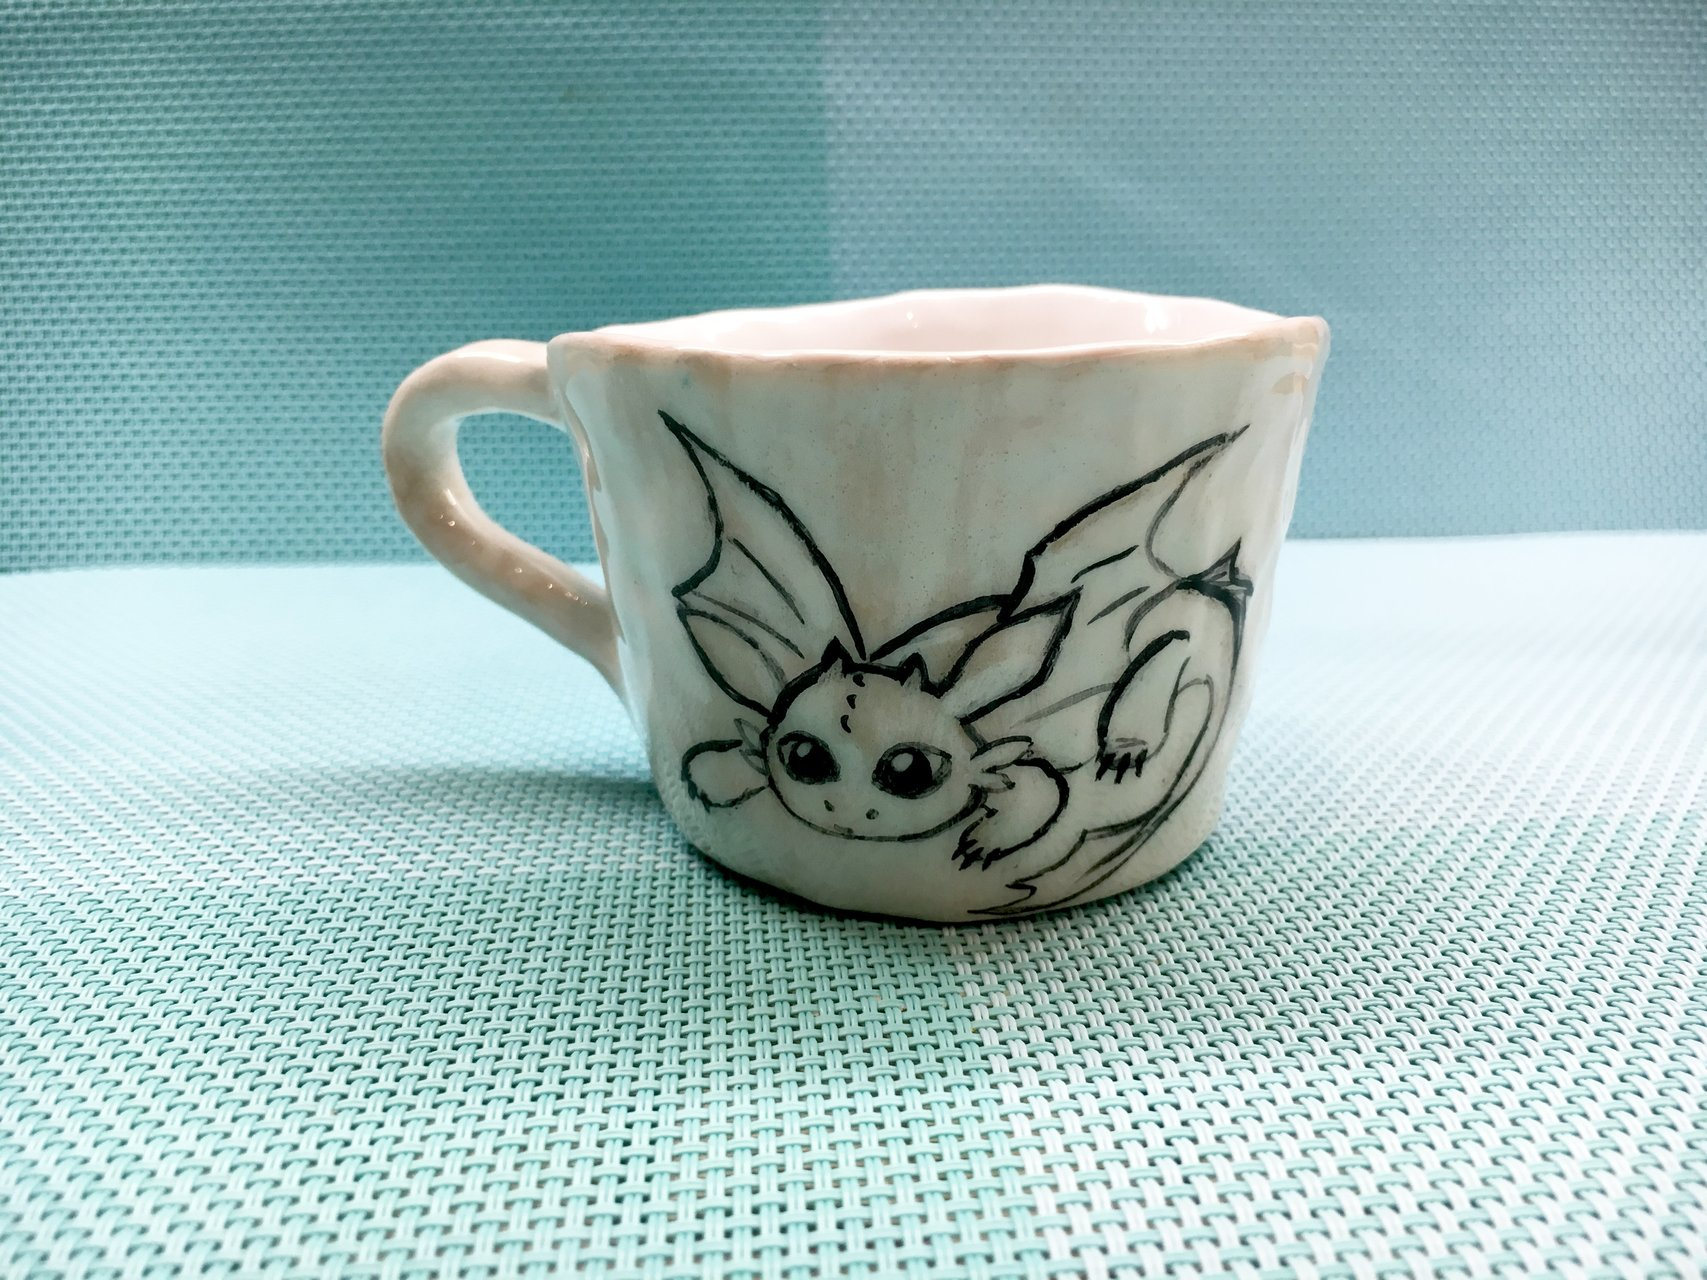 A cup with the Toothless - Cups, glasses, mugs, 80 ml, photo 3 of 3.